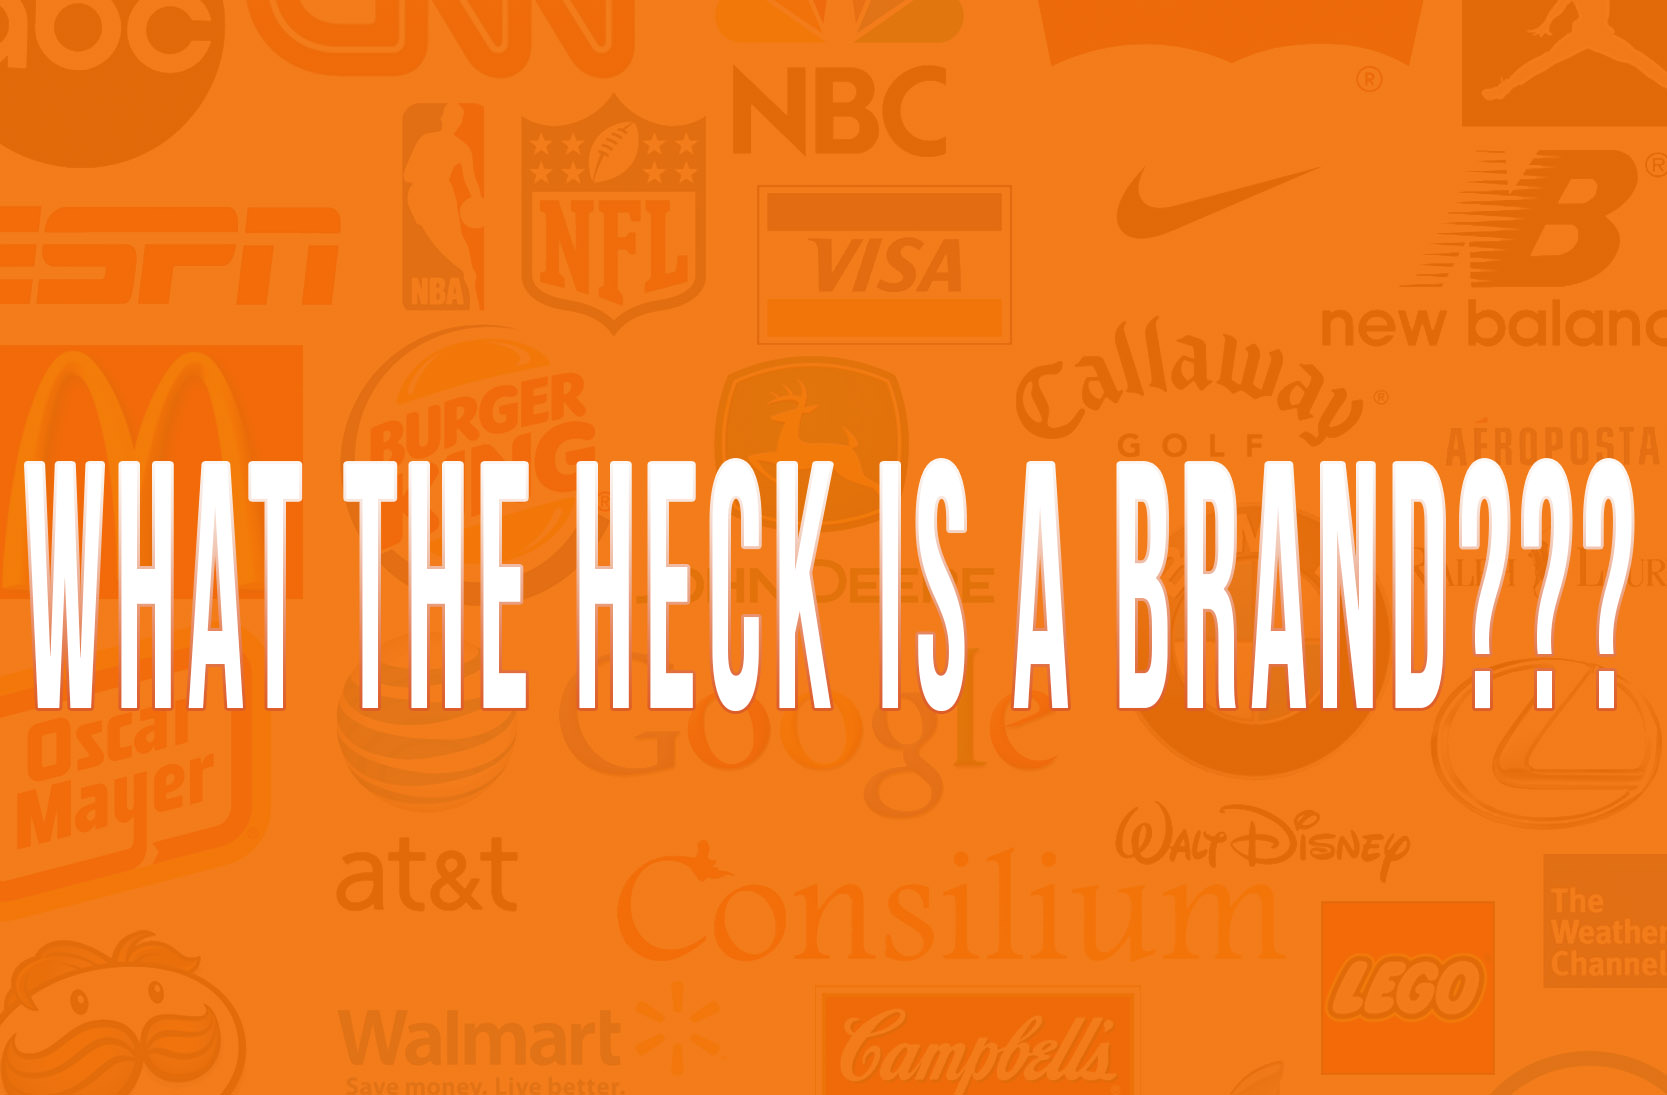 What the heck is a brand?